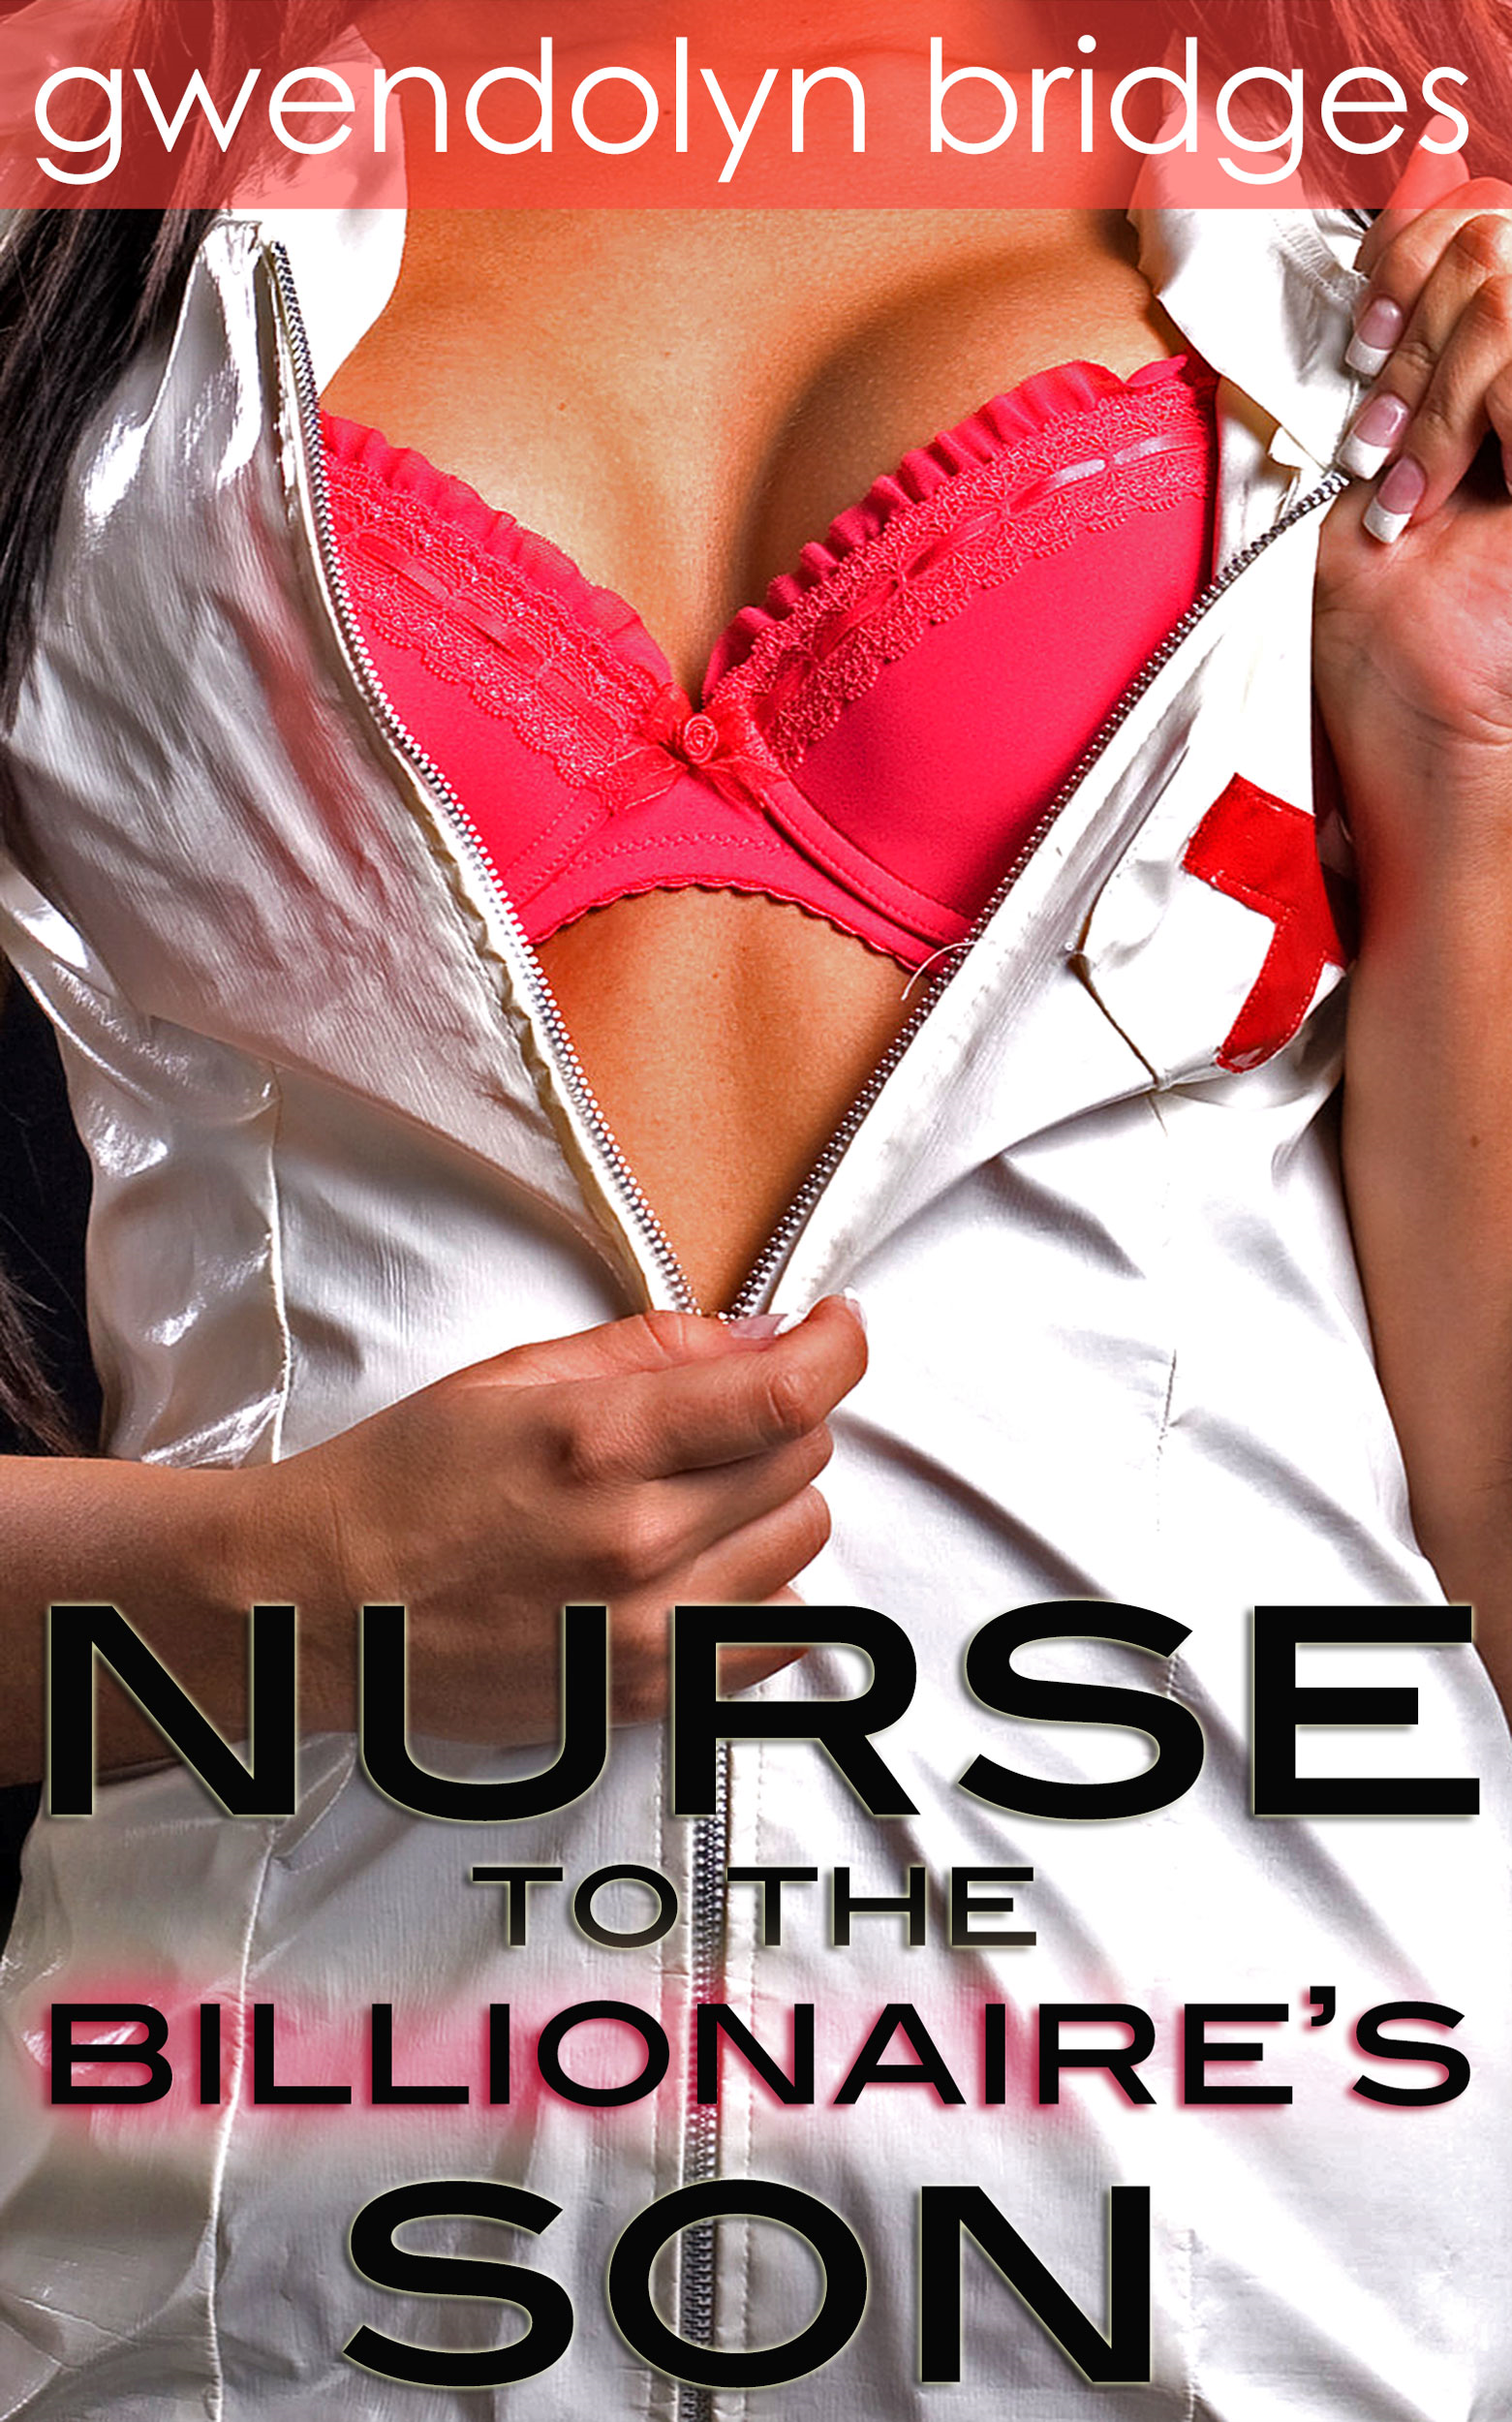 Nurse to the Billionaire's Son (Taboo Erotic Romance)